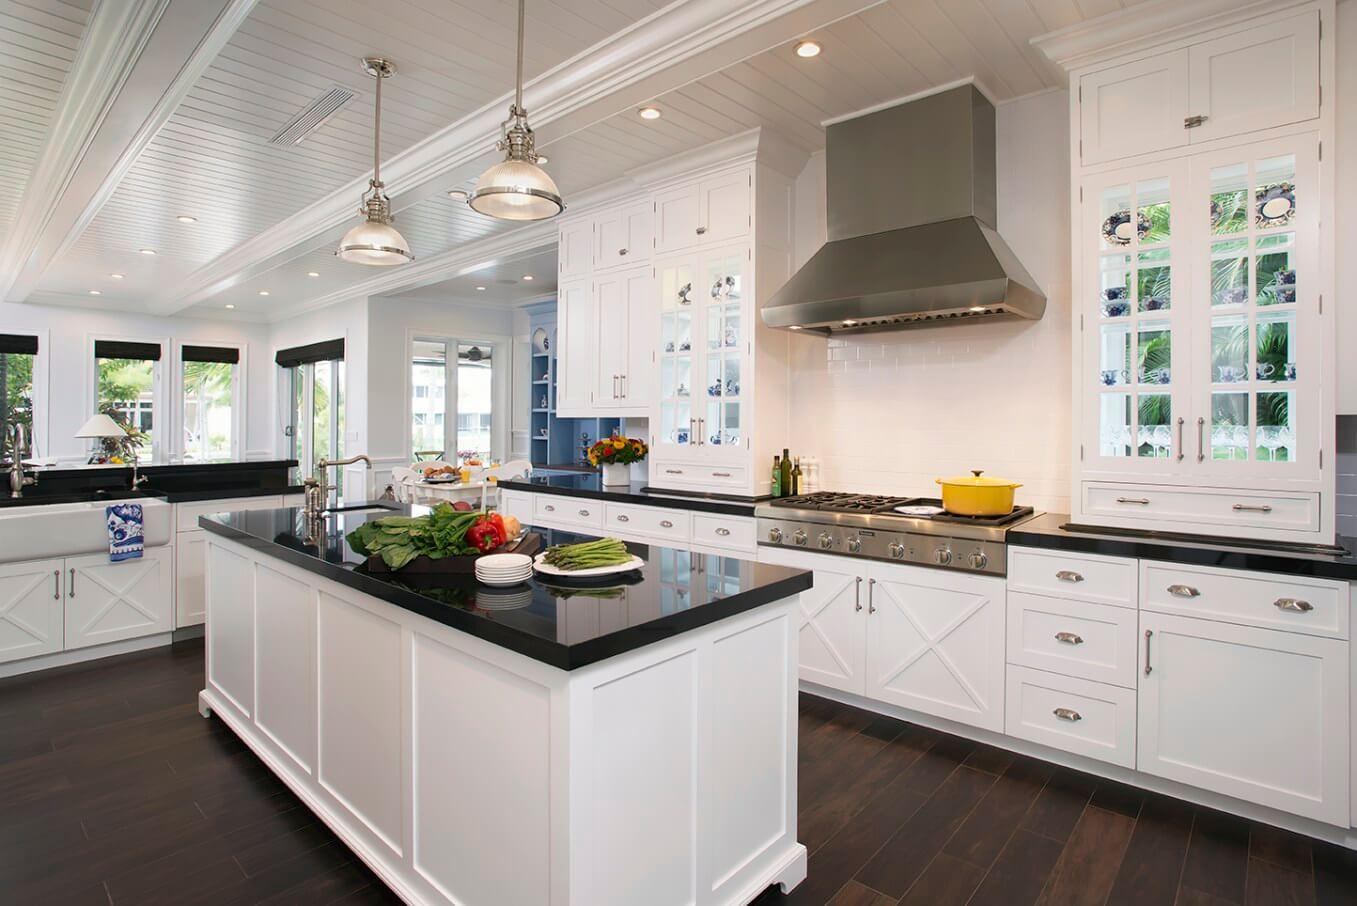 innovative updated kitchen colors | SoFlo Kitchen Remodeling - Innovative Kitchen Painting and ...